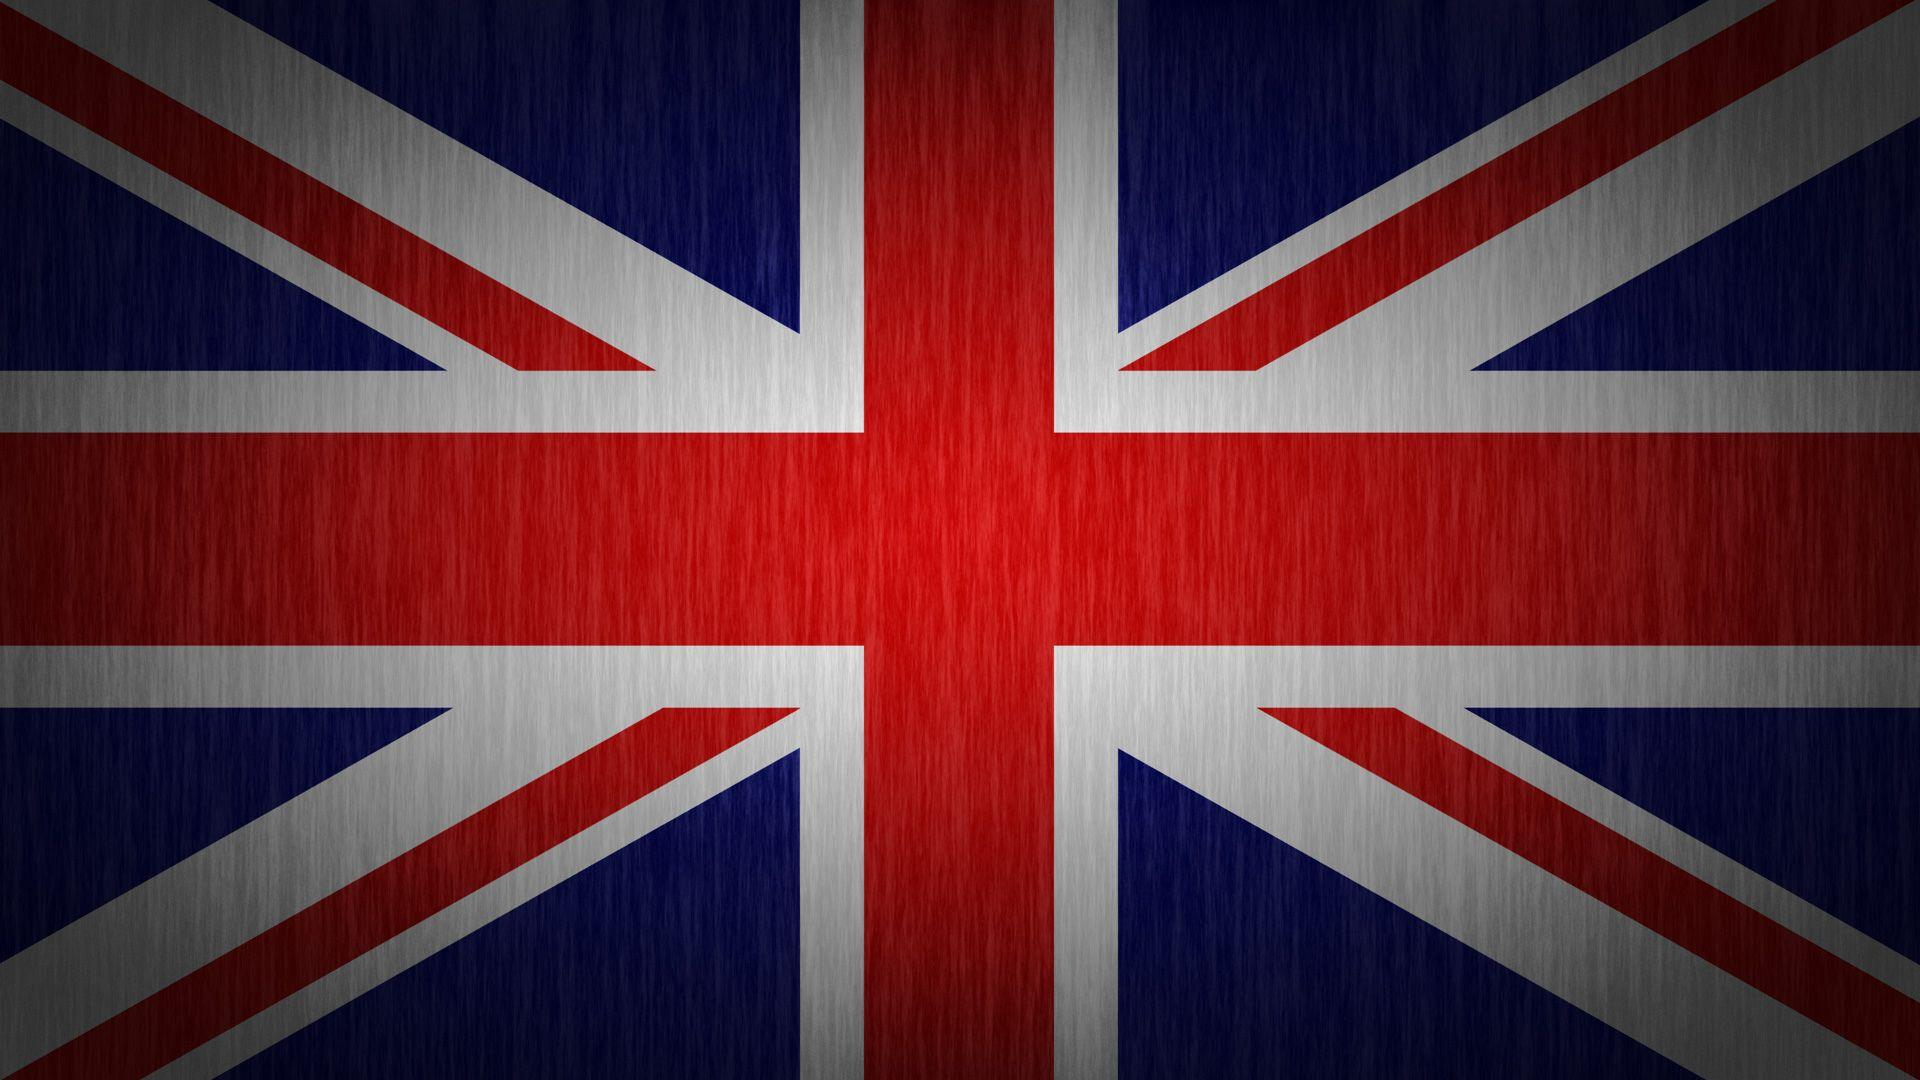 Union jack wallpapers wallpaper cave for Ohrensessel union jack